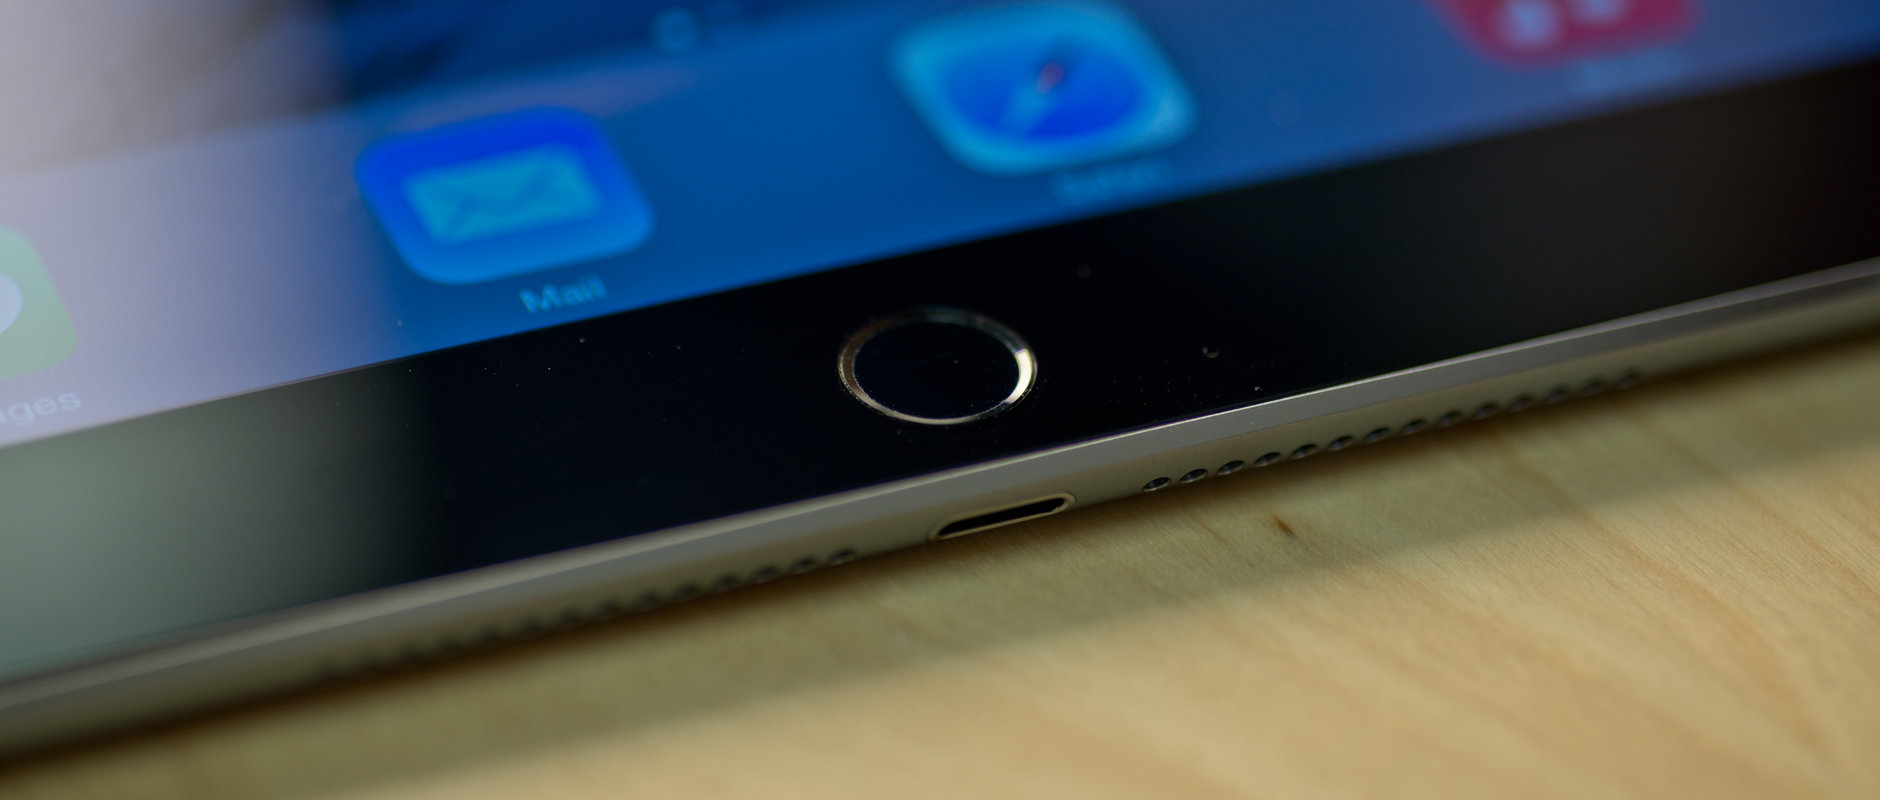 A photograph of the Apple iPad Air 2's home button.